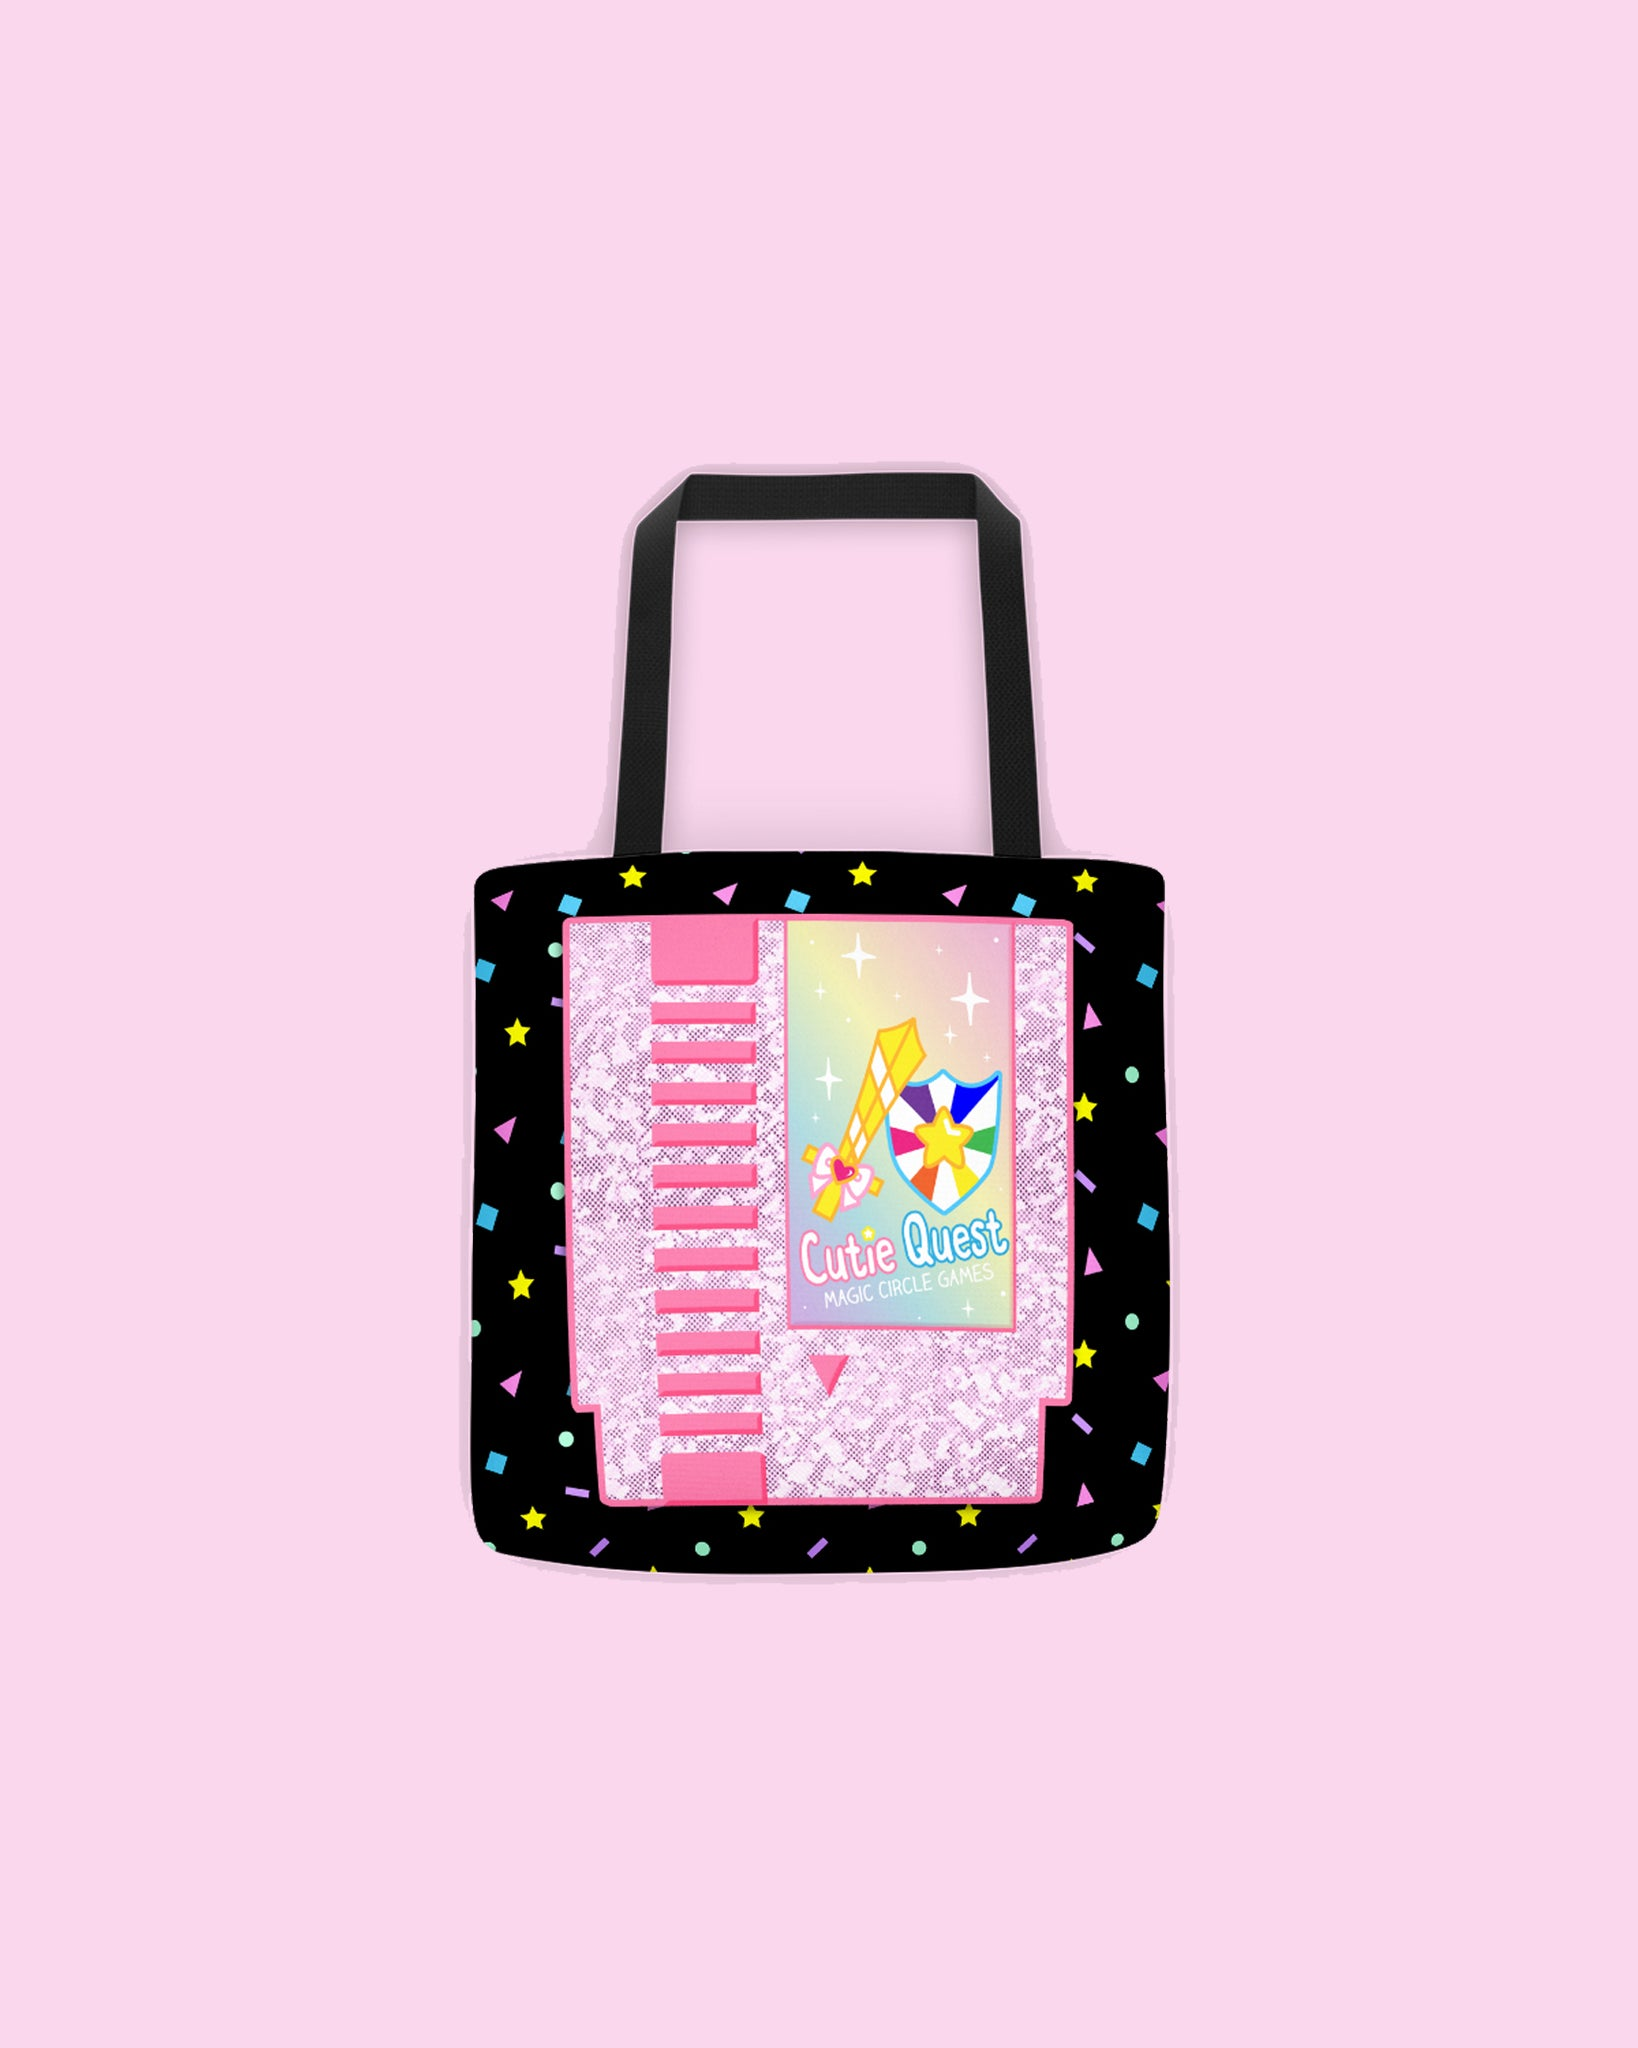 Cutie Quest Cartridge Video Game Inspired Tote Bag - Sublimation Printed